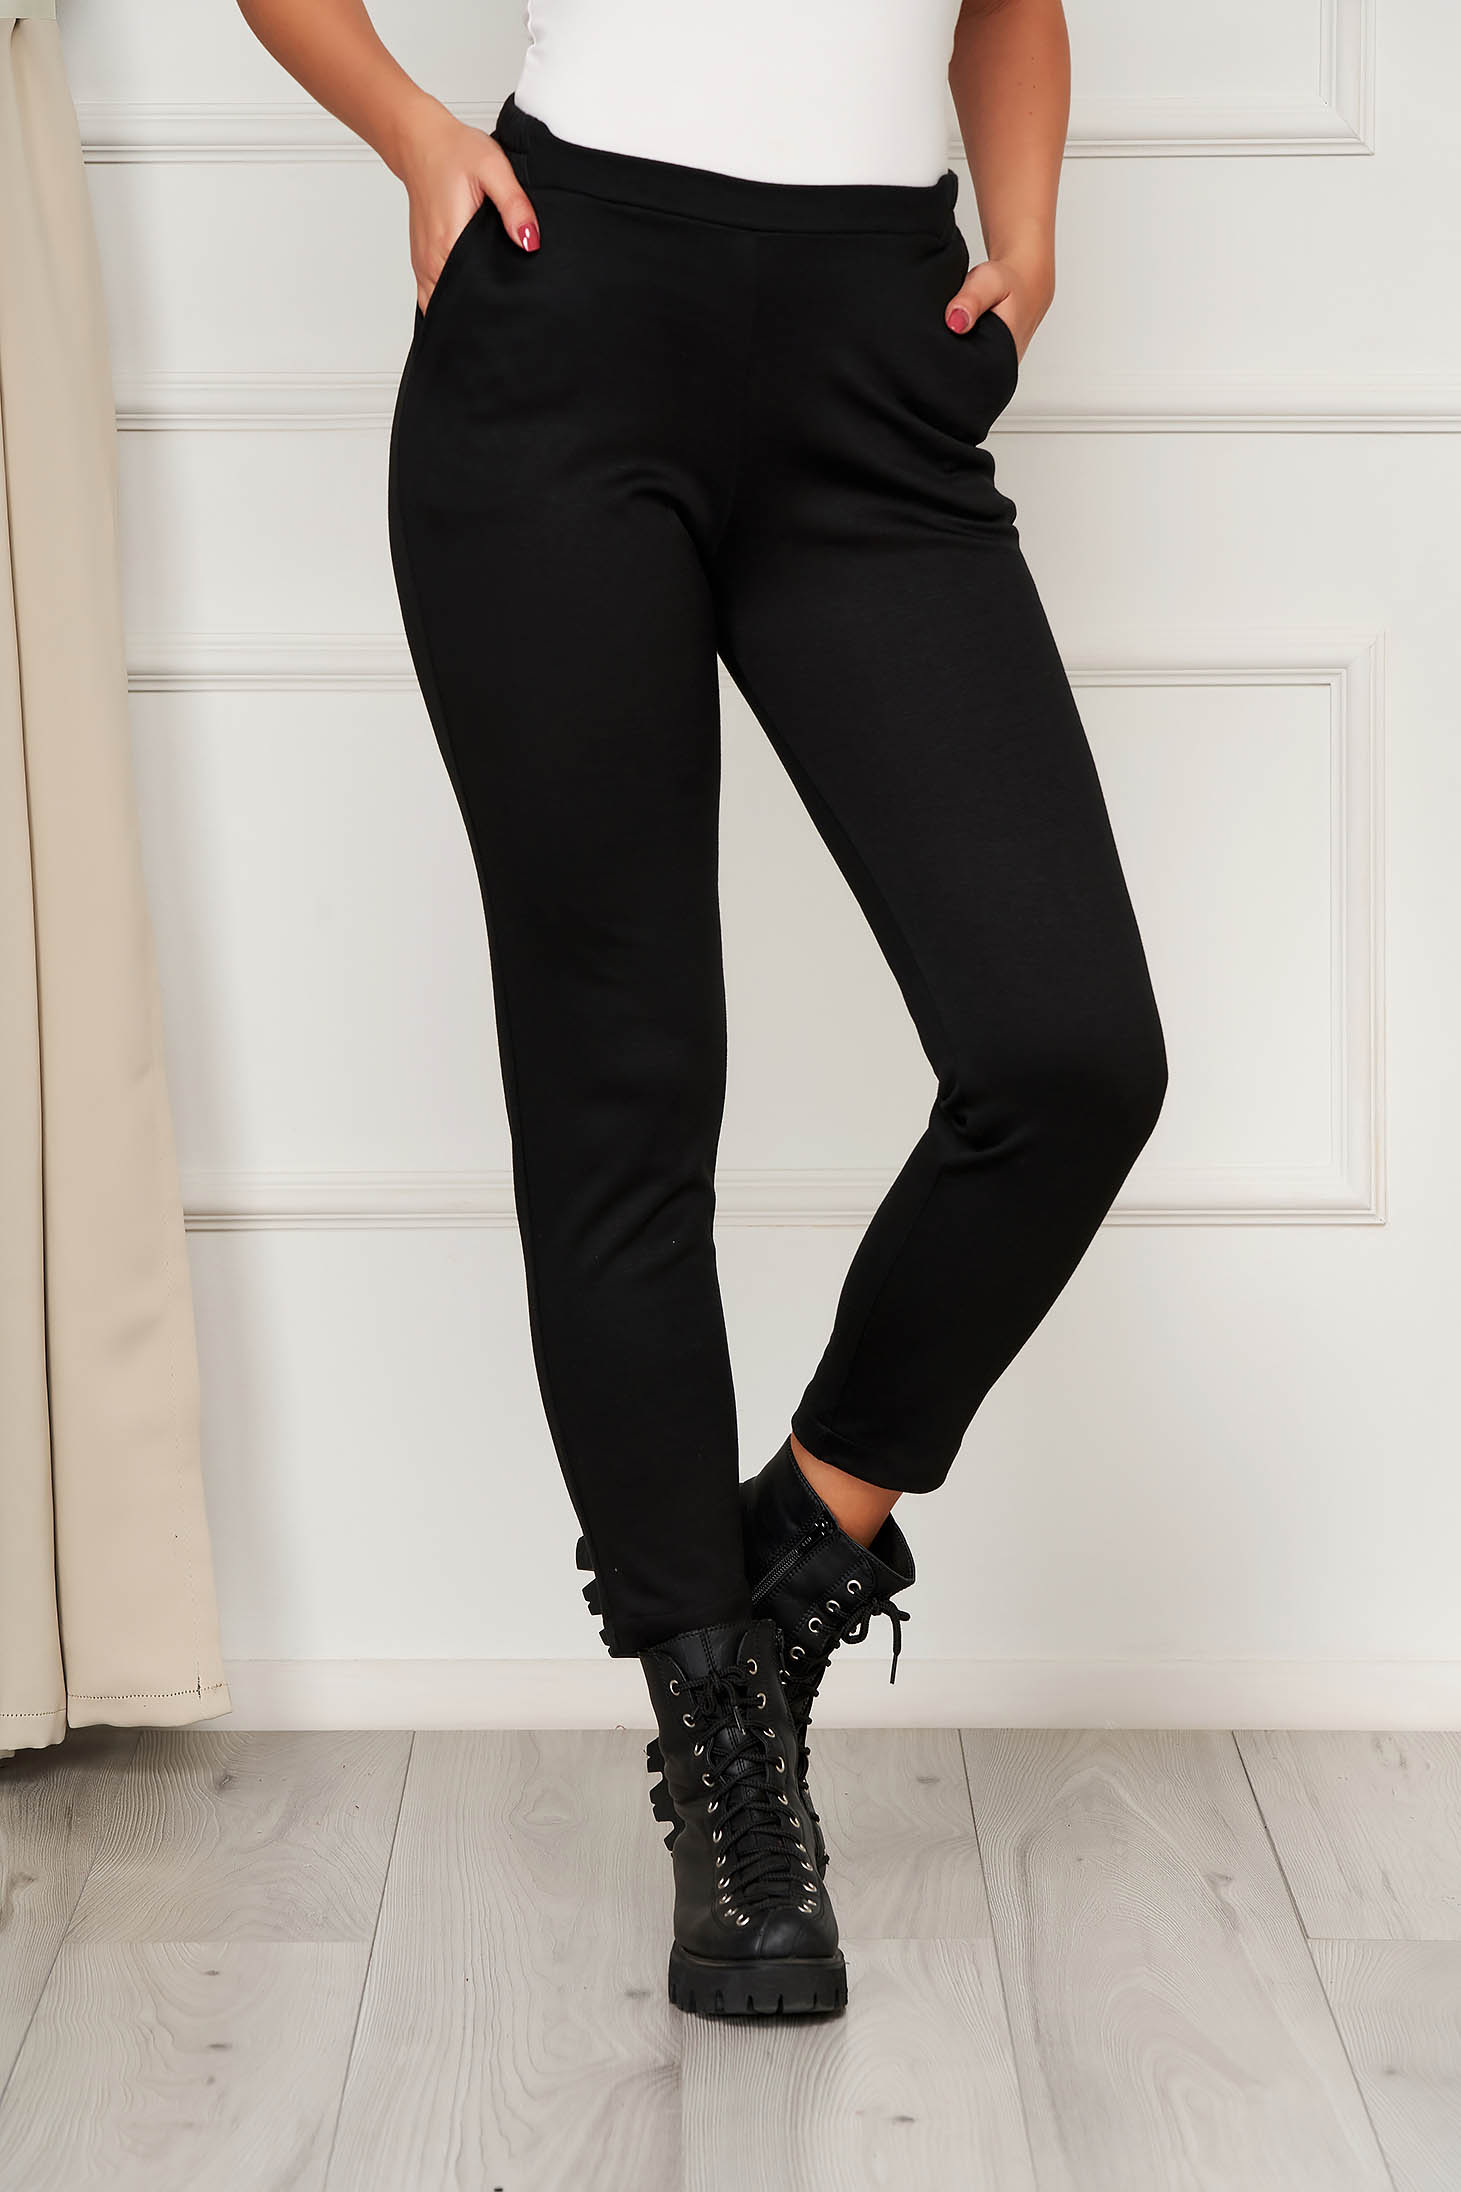 Casual black StarShinerS trousers medium waist with elastic waist with tented cut